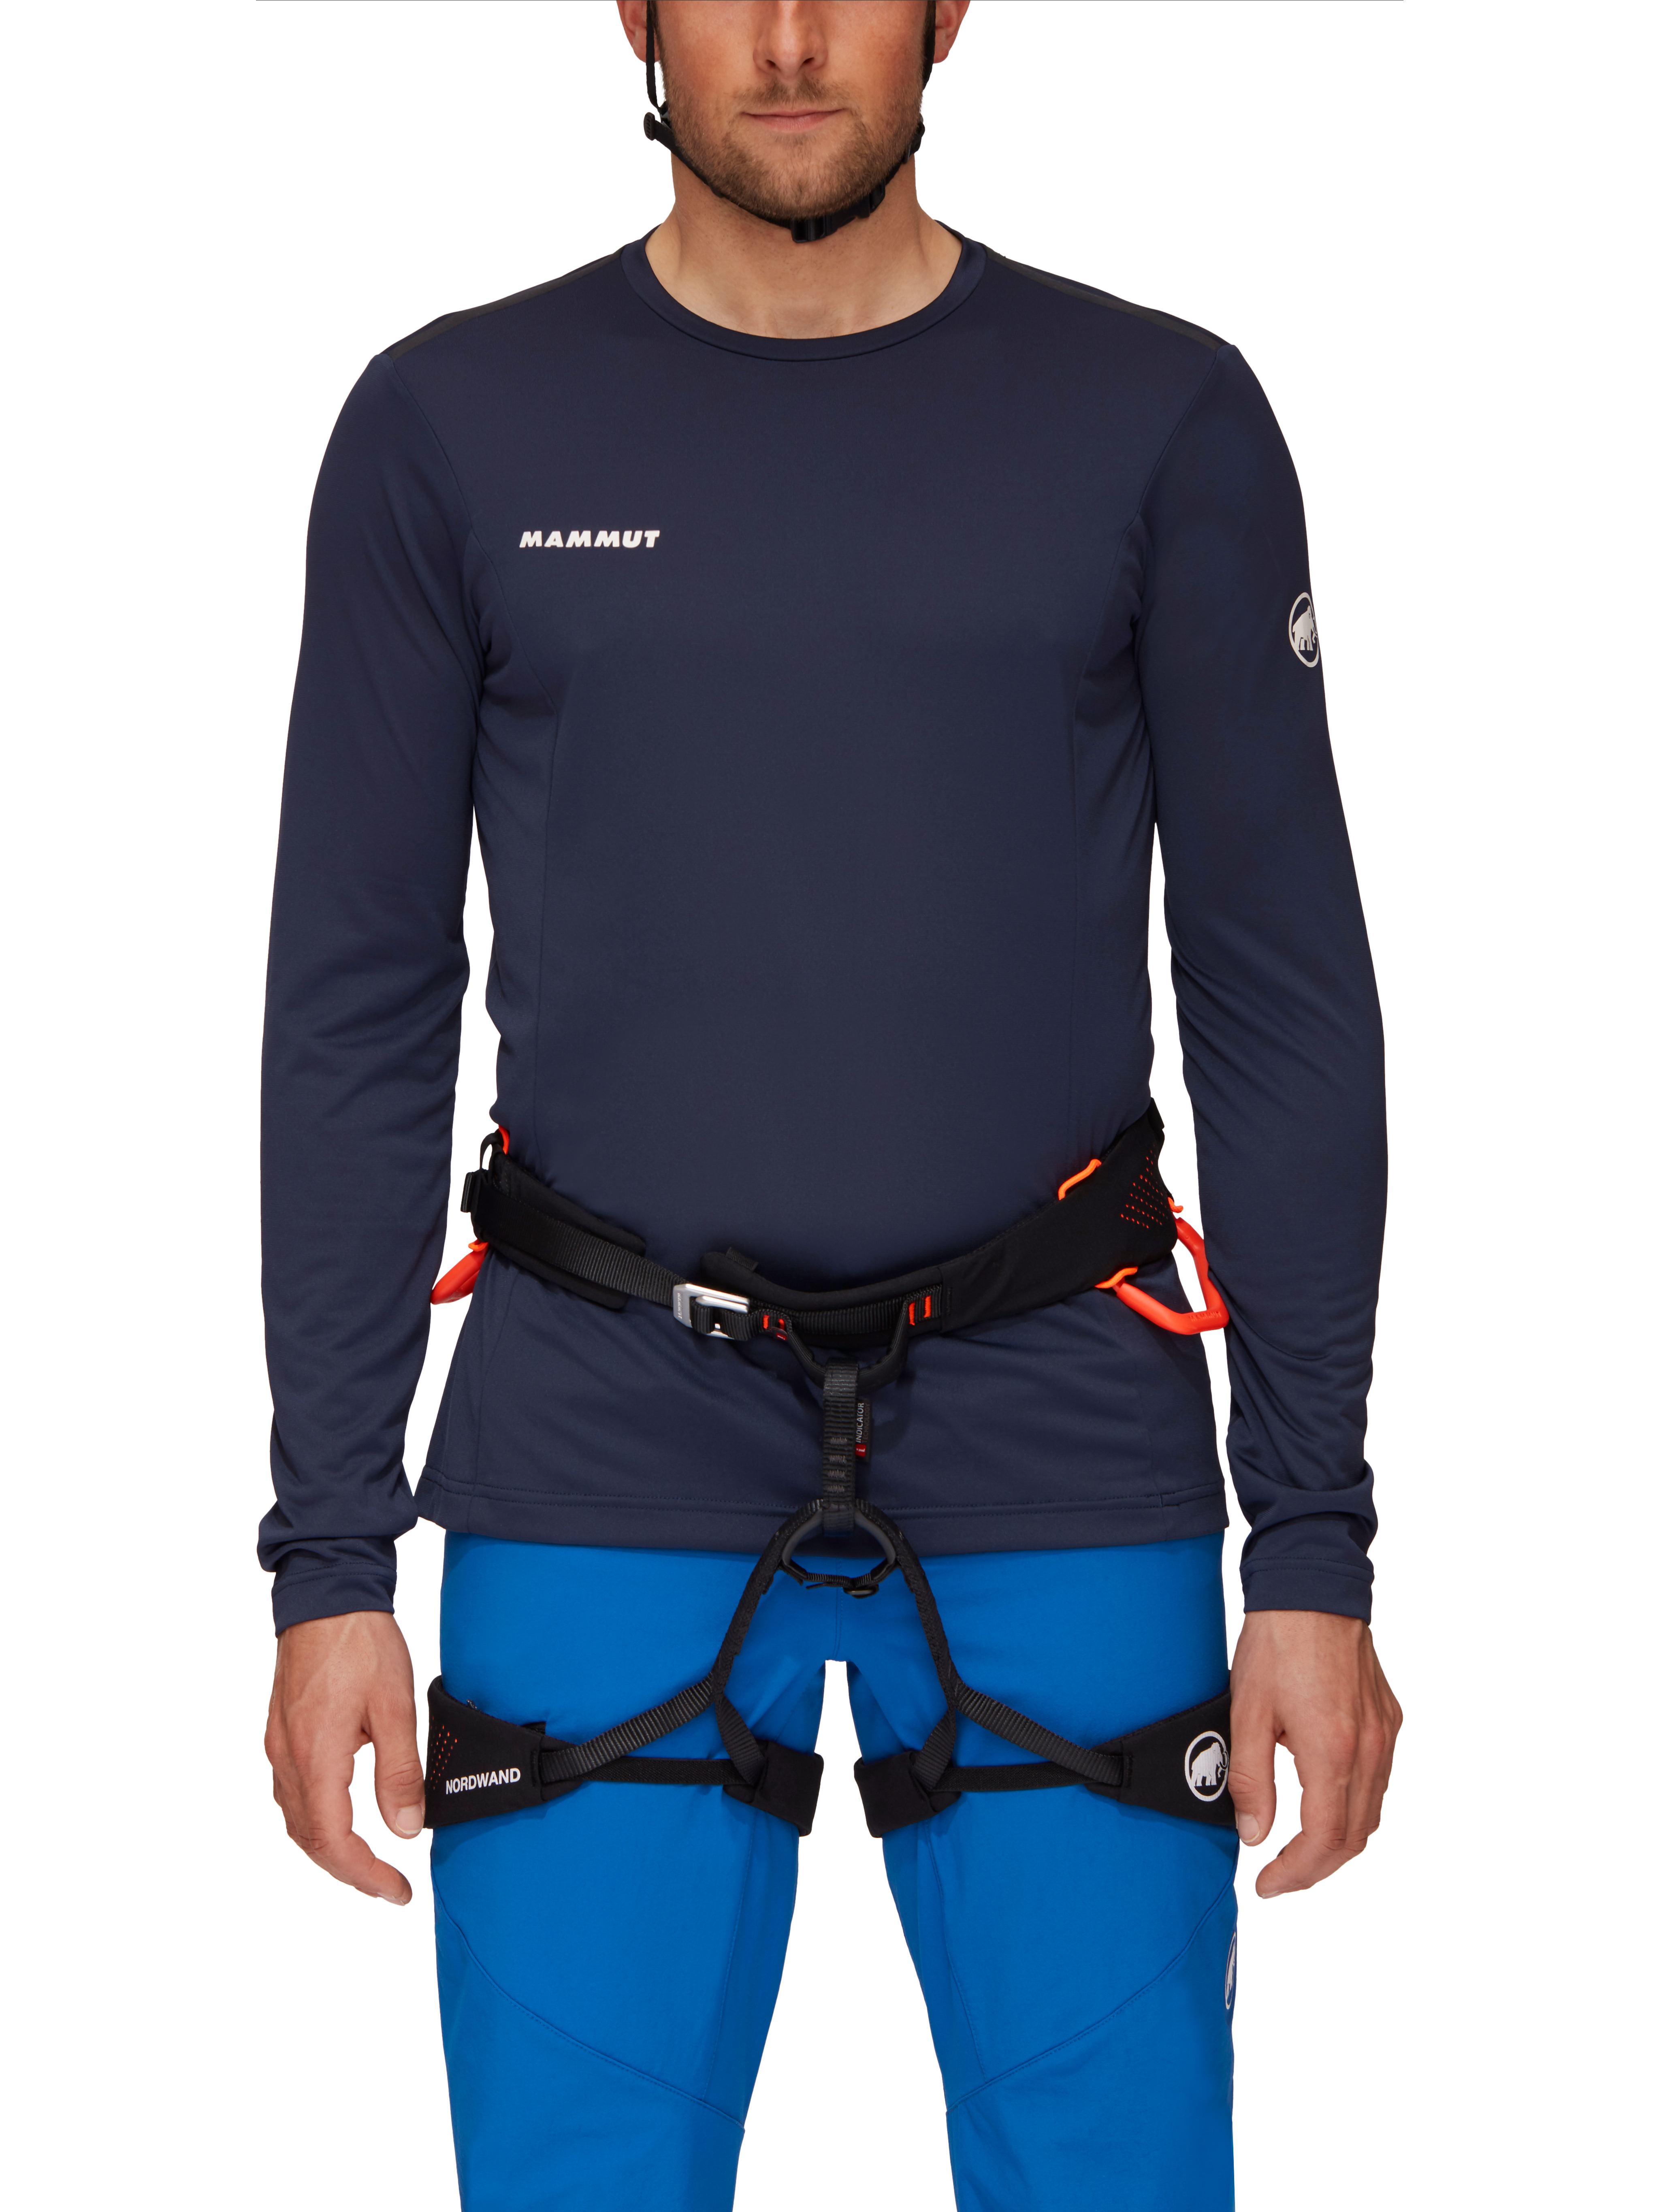 Nordwand Harness product image